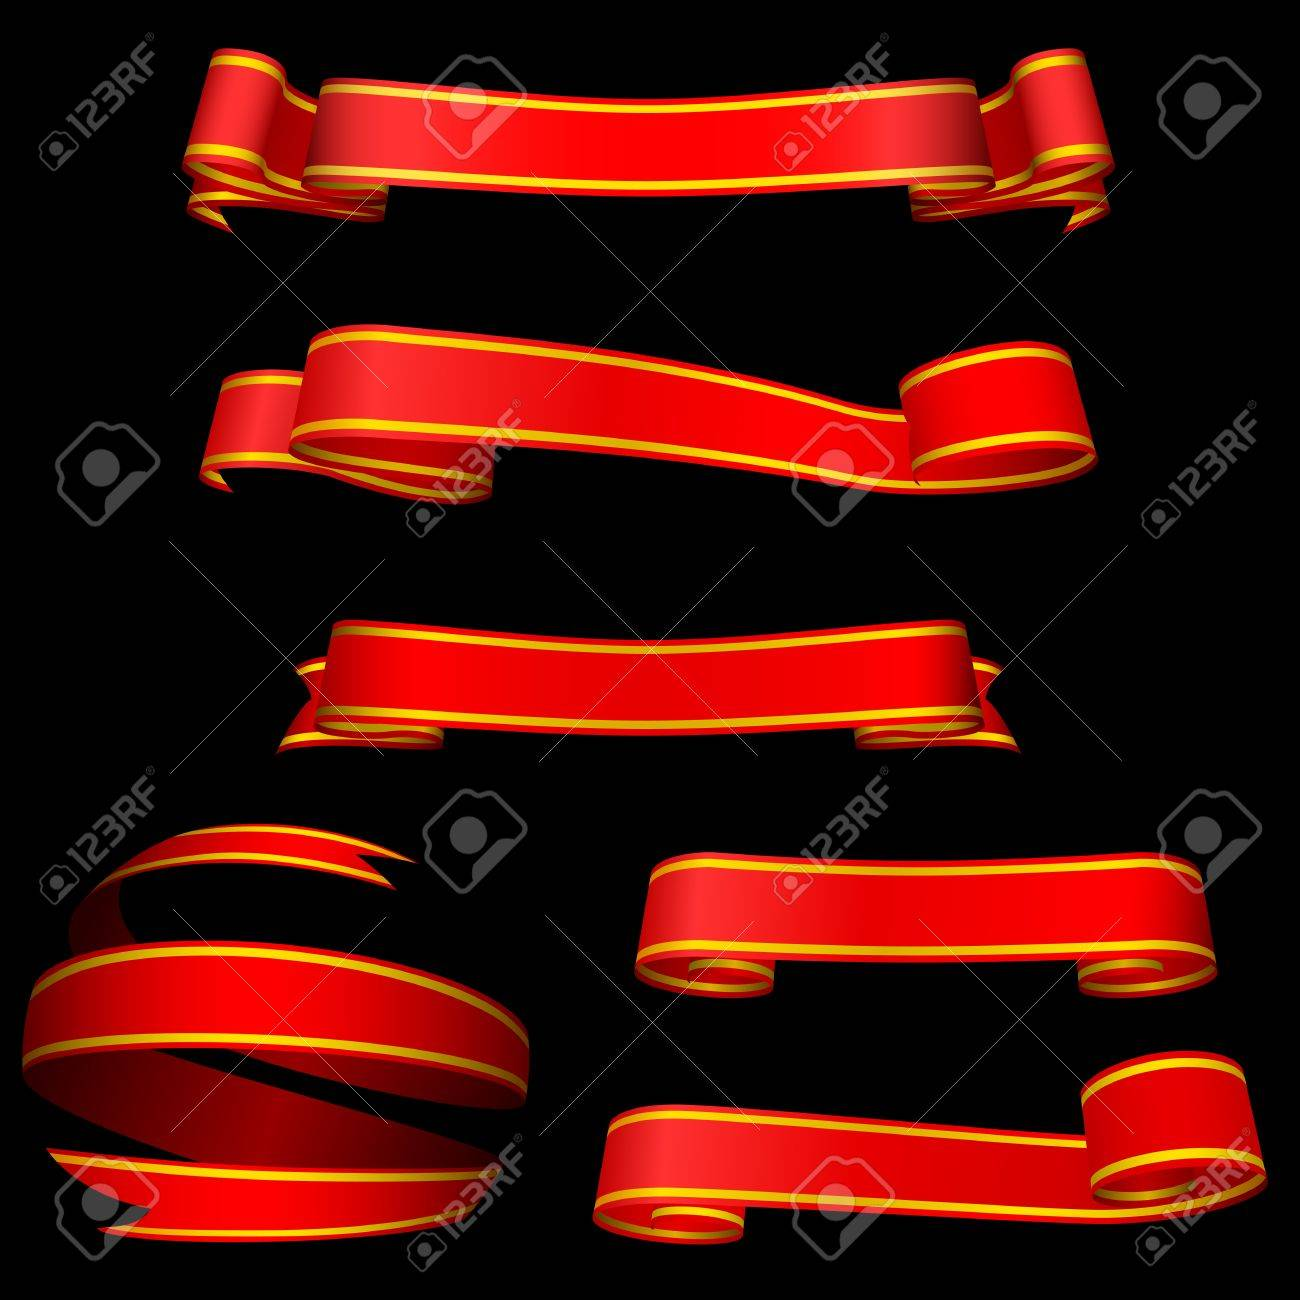 Red banners isolated on black background. Stock Vector - 19397674